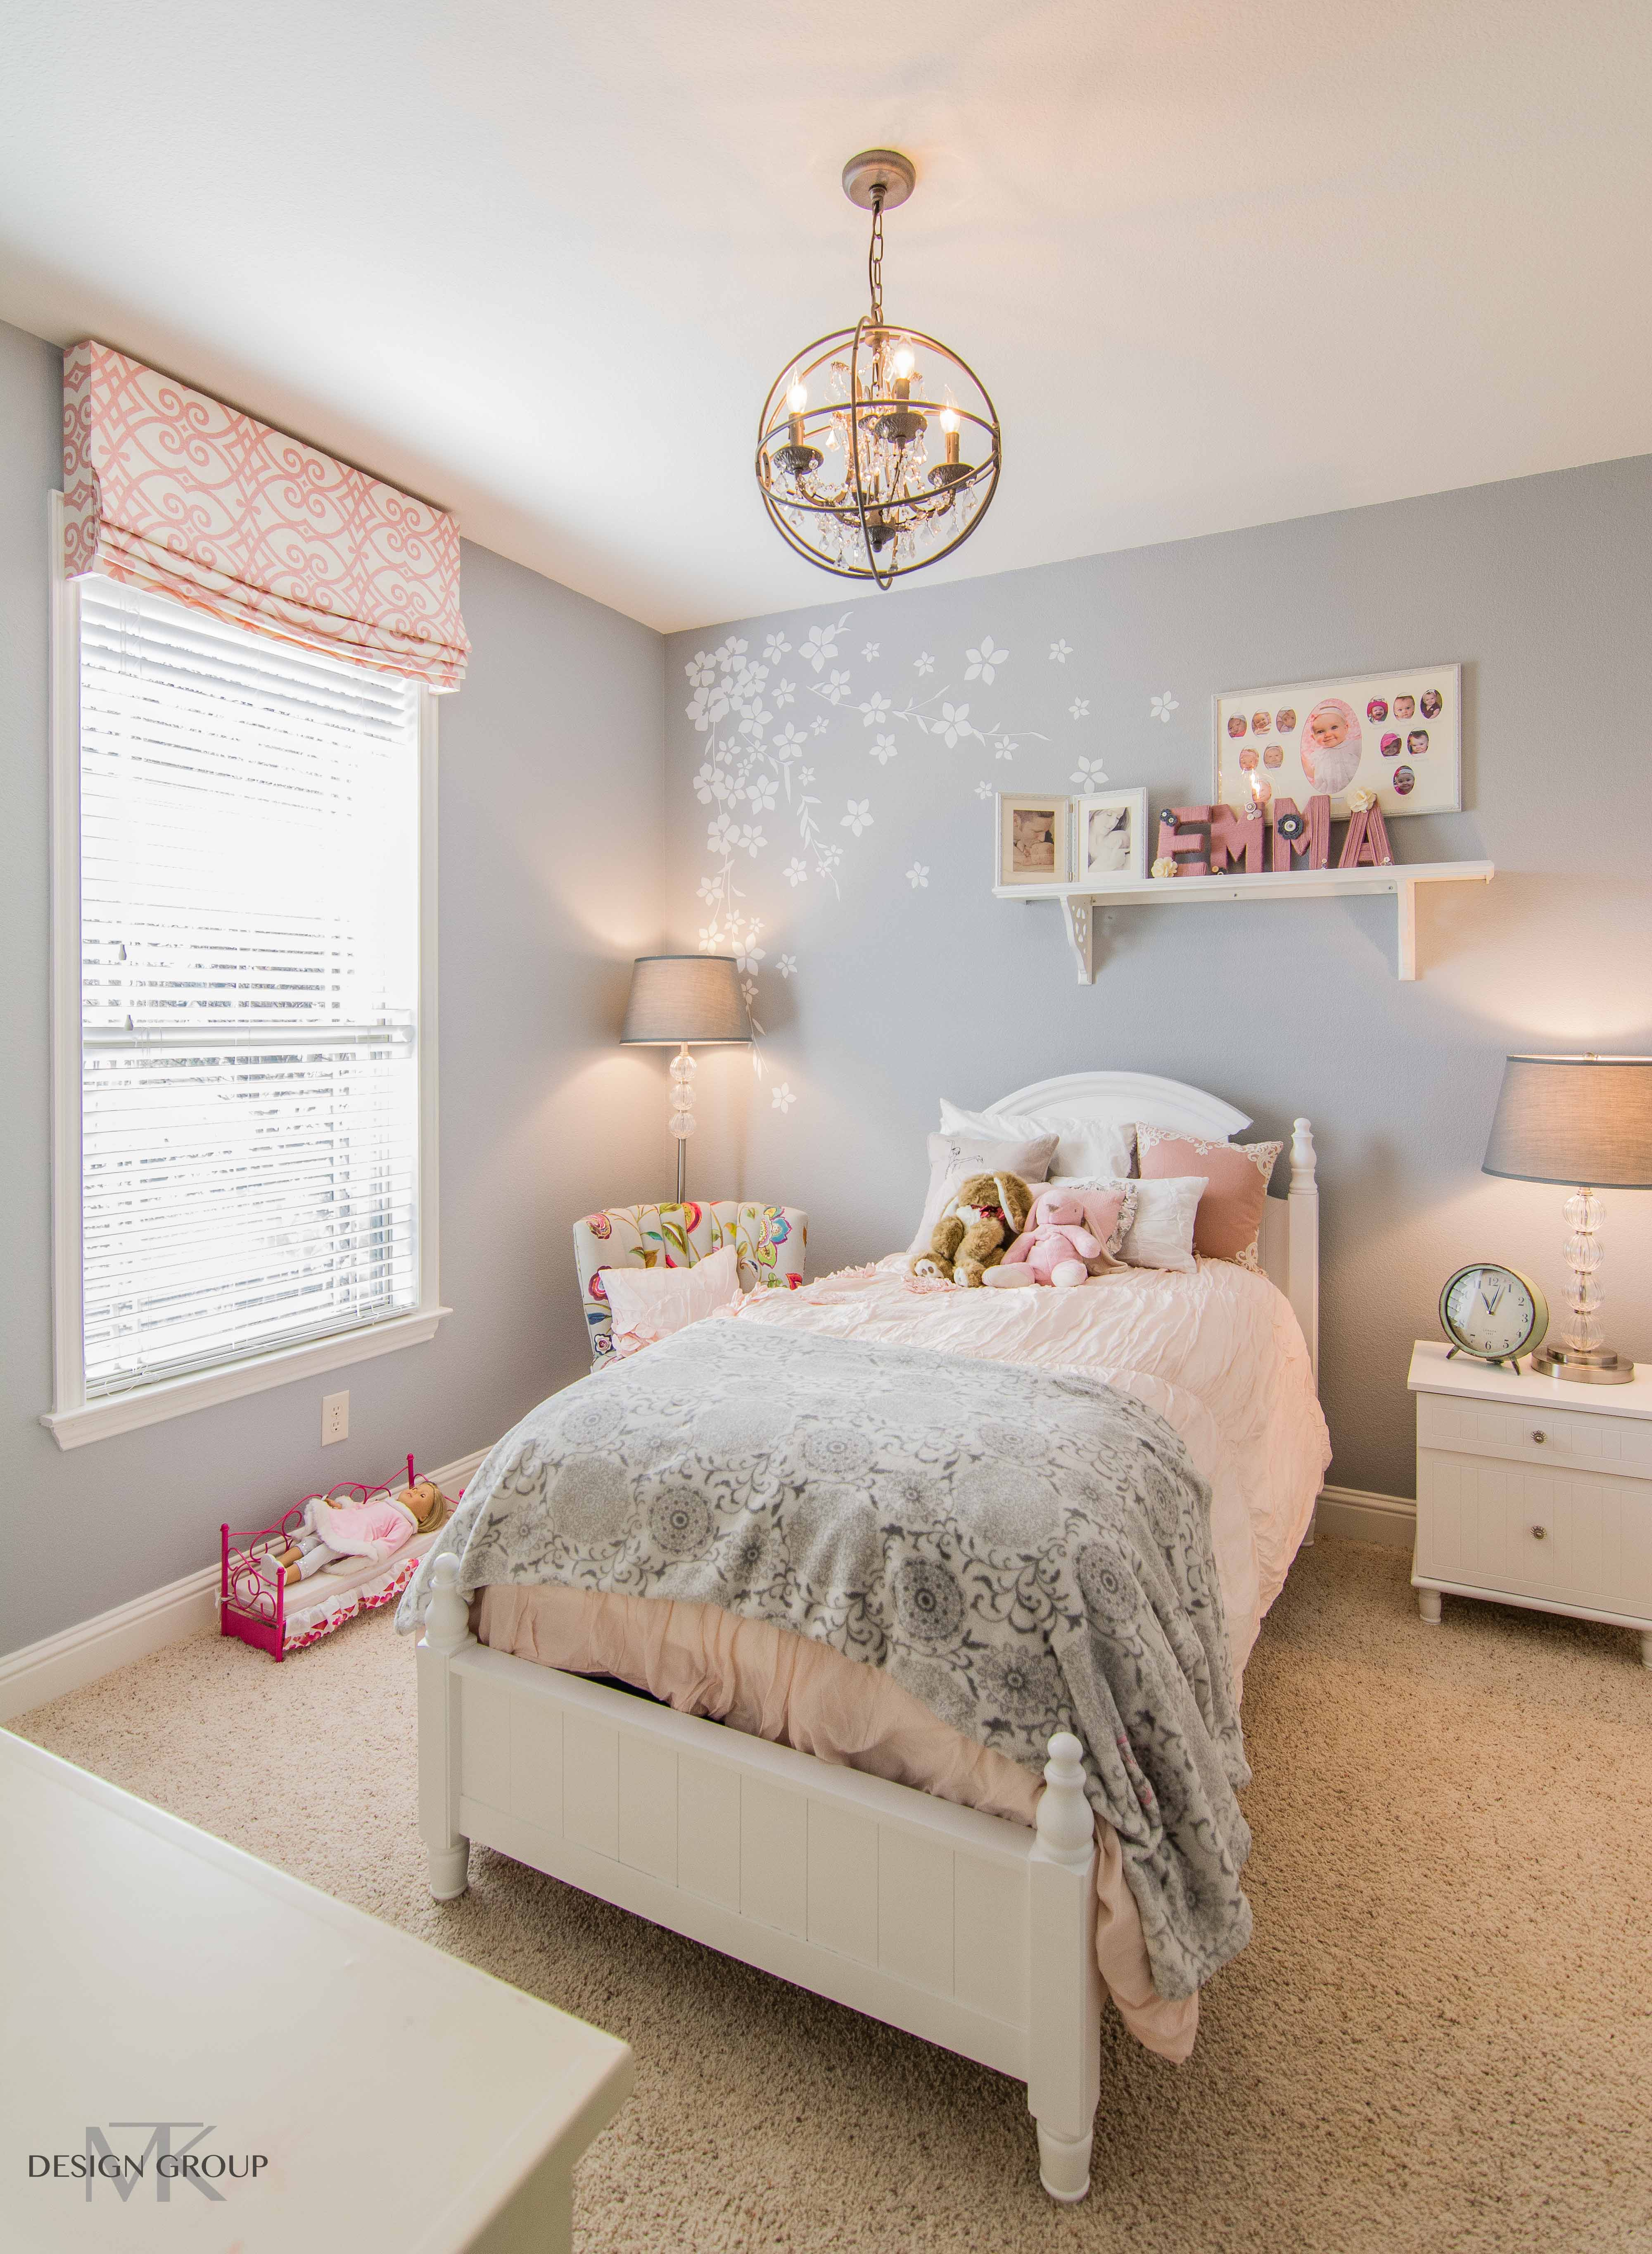 Midlothian Transitional Home Design, MTK Design Group, DFW Interior Decorating Services (5 of 39)